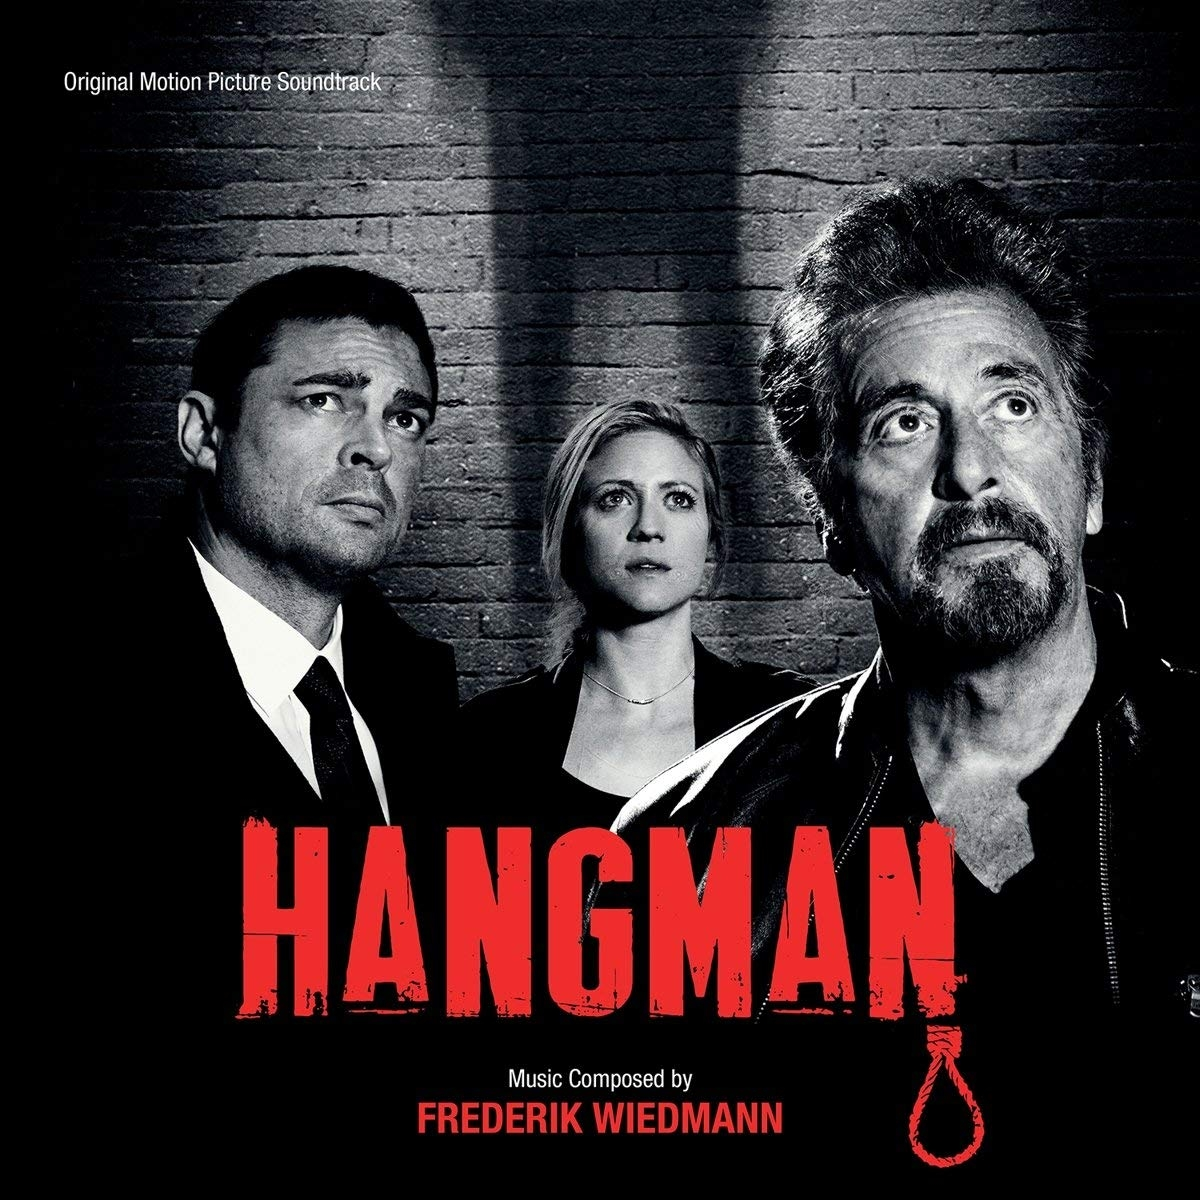 ost 06 18 VS Hangman